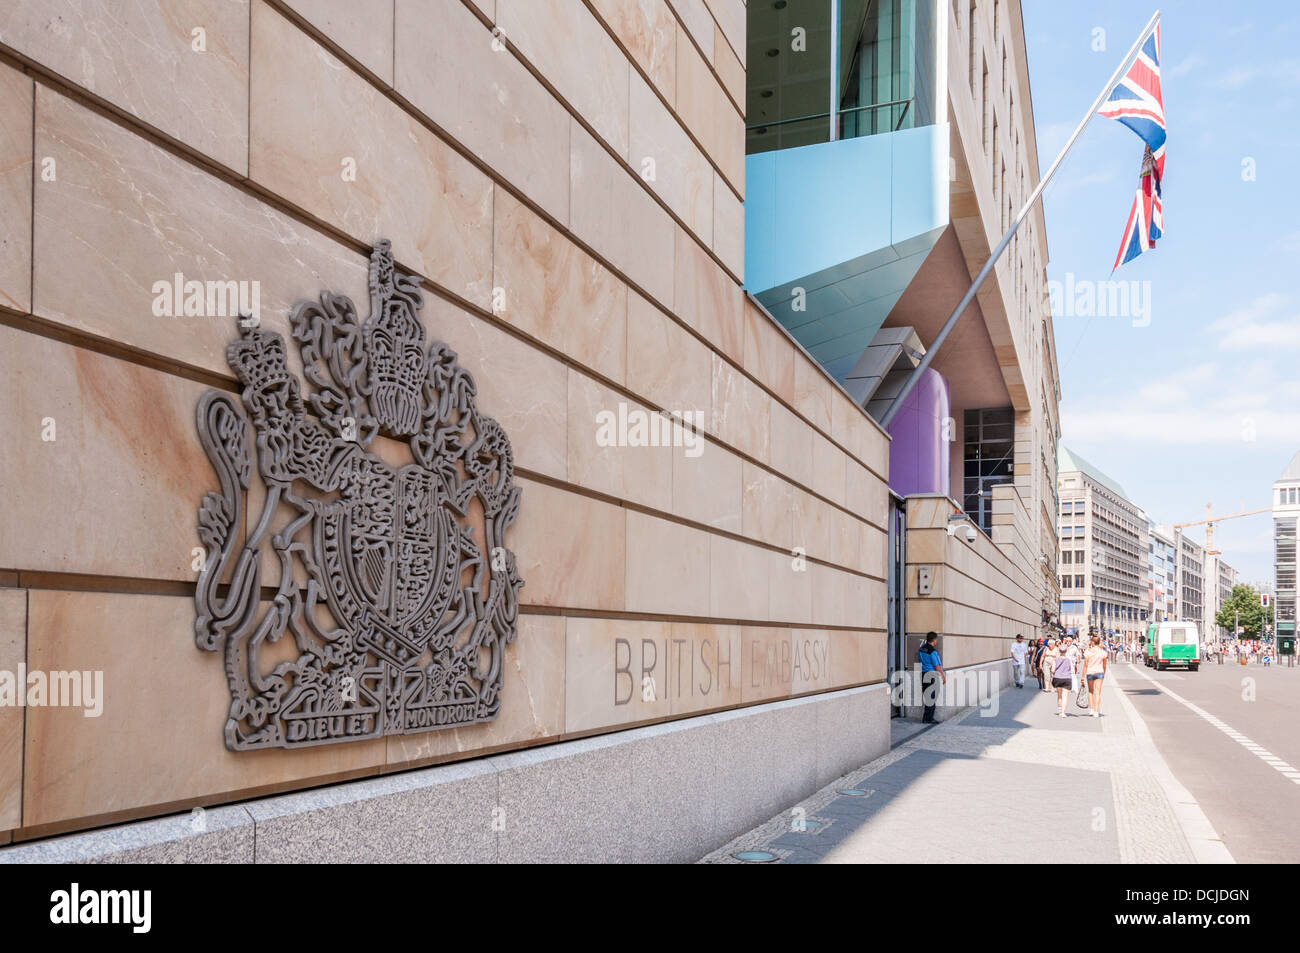 Royal Coat of Arms of the United Kingdom of Great Britain and Northern Ireland at the British Embassy - Berlin Germany Stock Photo